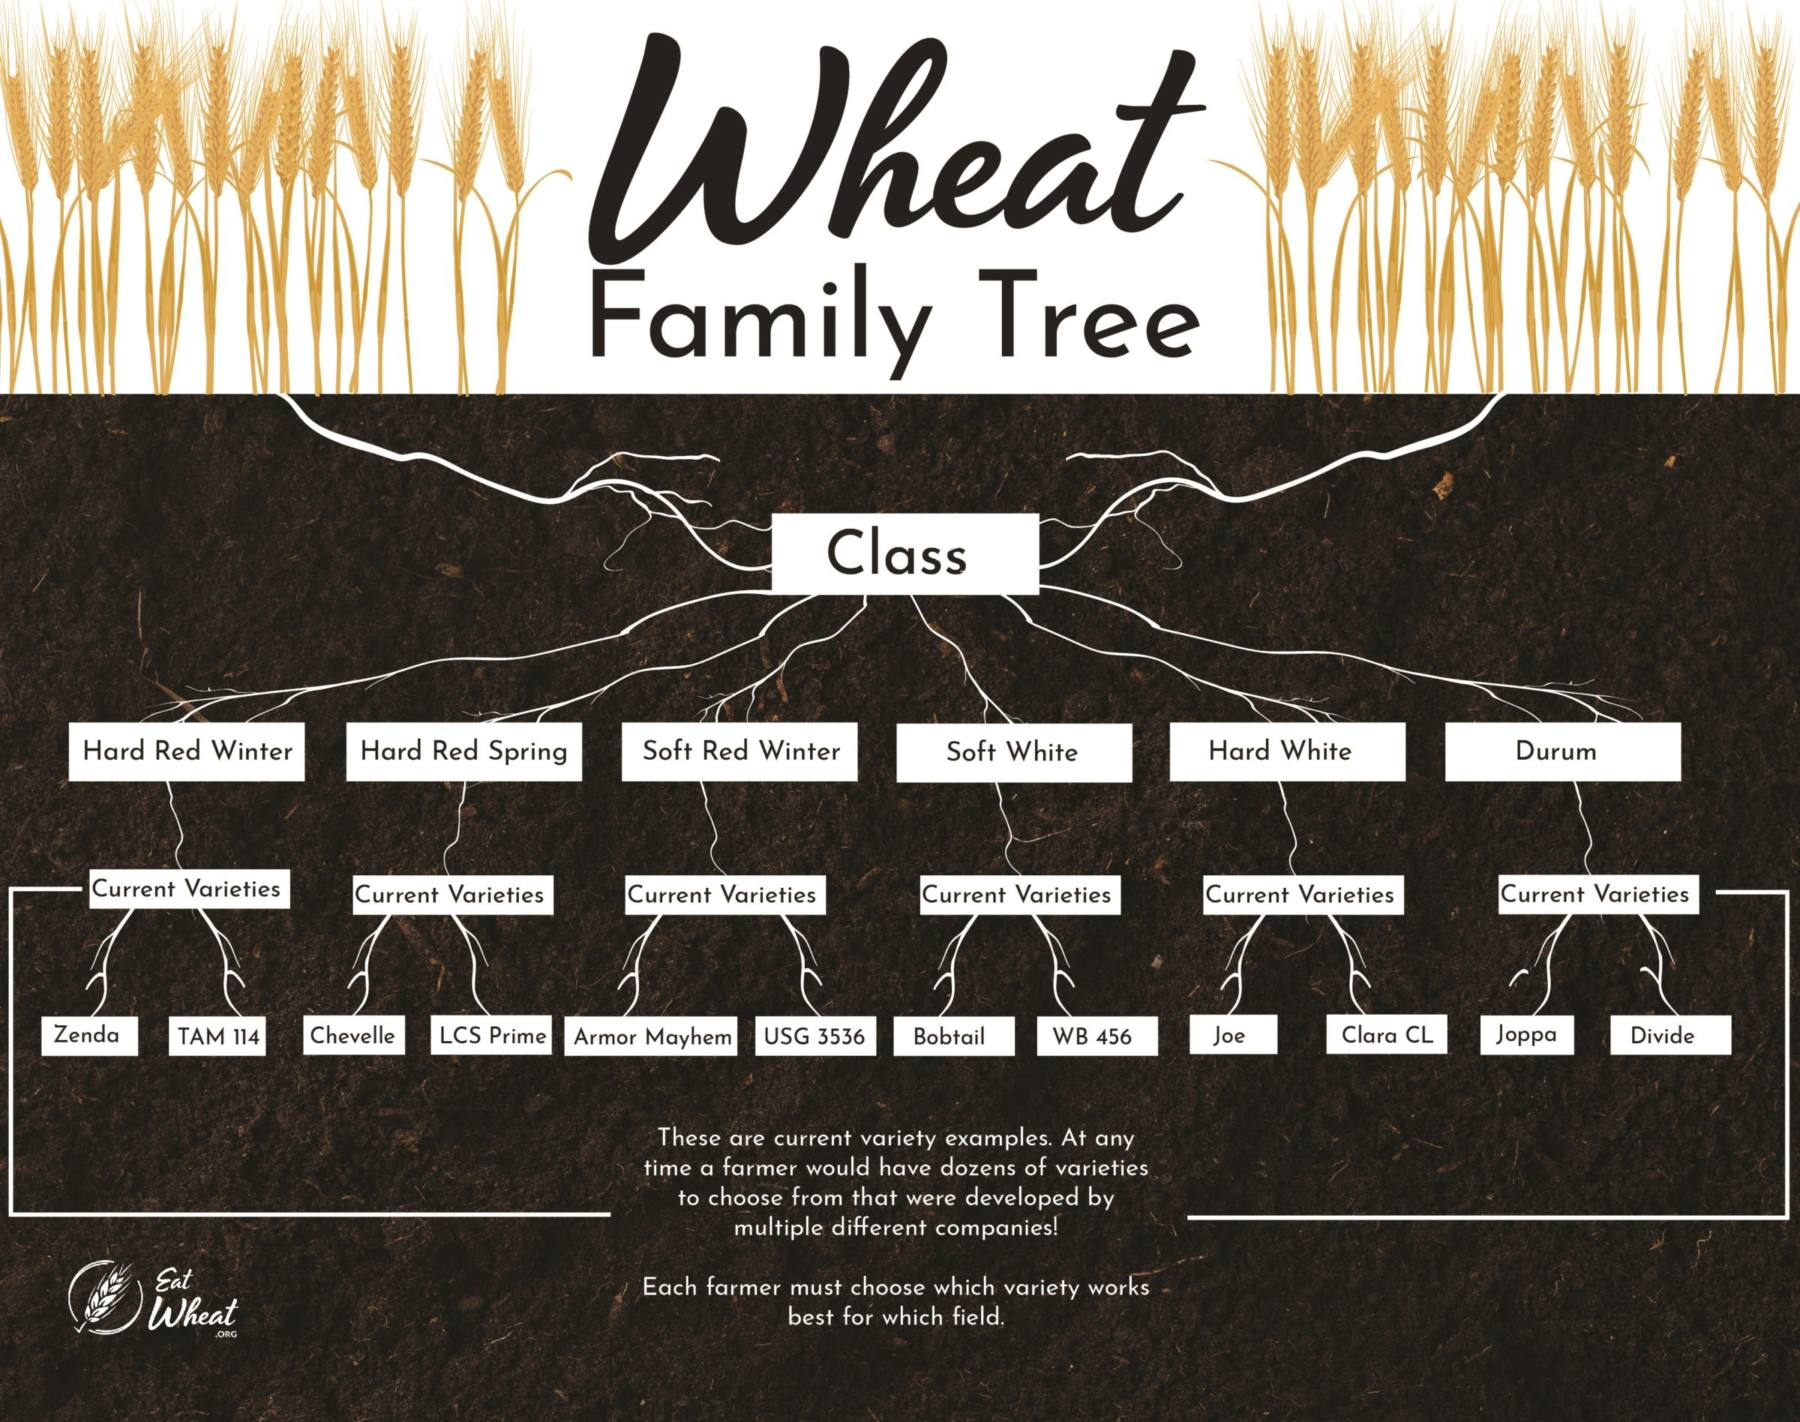 What kinds of wheat are there? And what are those kinds good at making? We have all that information, and more at EatWheat.org!